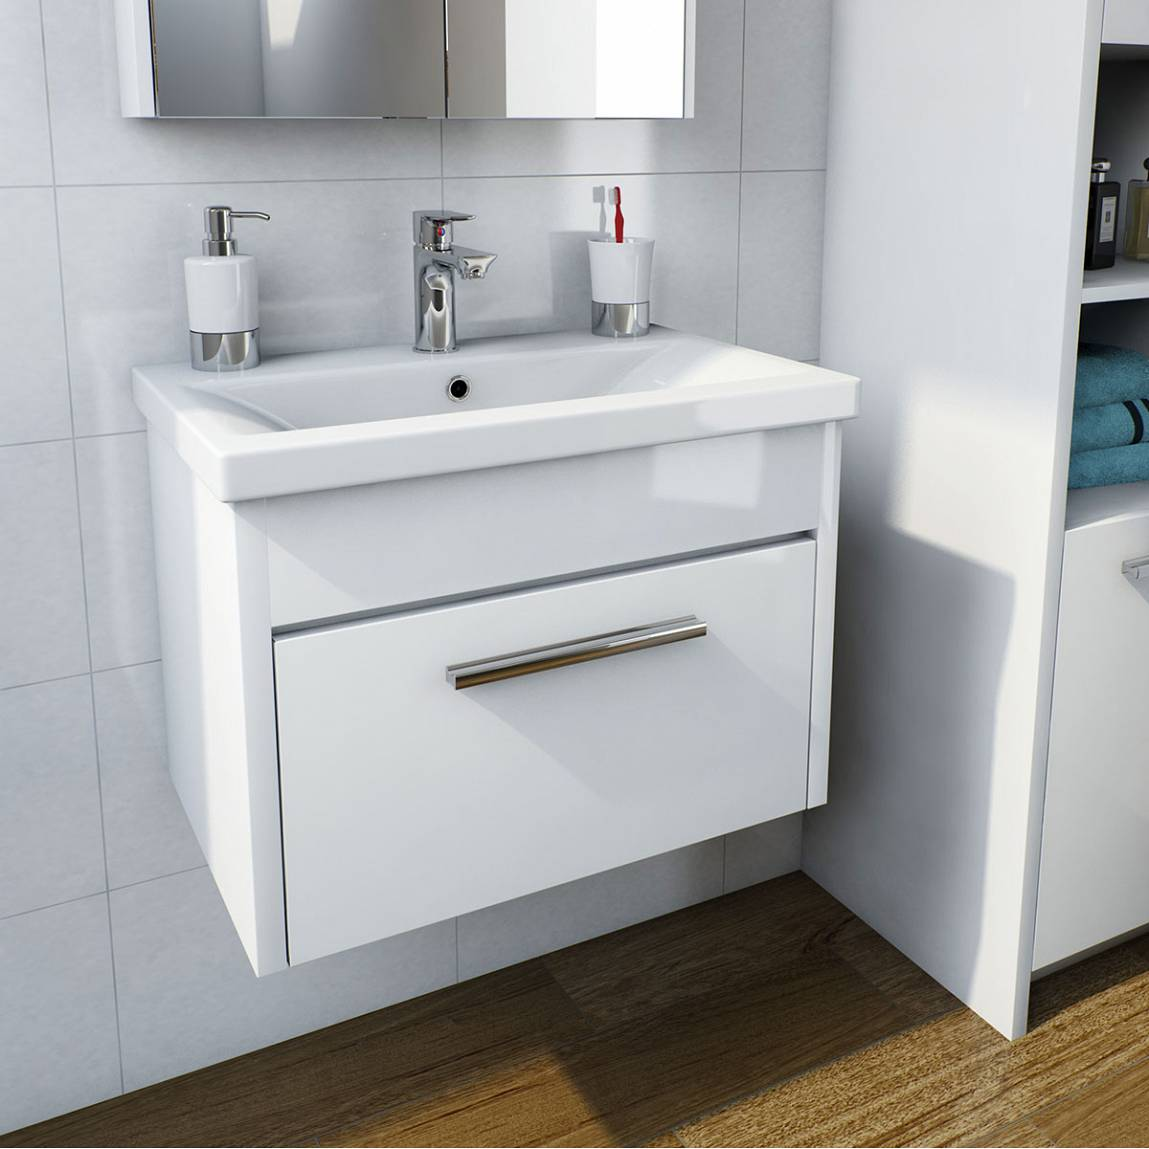 Smart white wall hung 600 drawer unit & inset basin